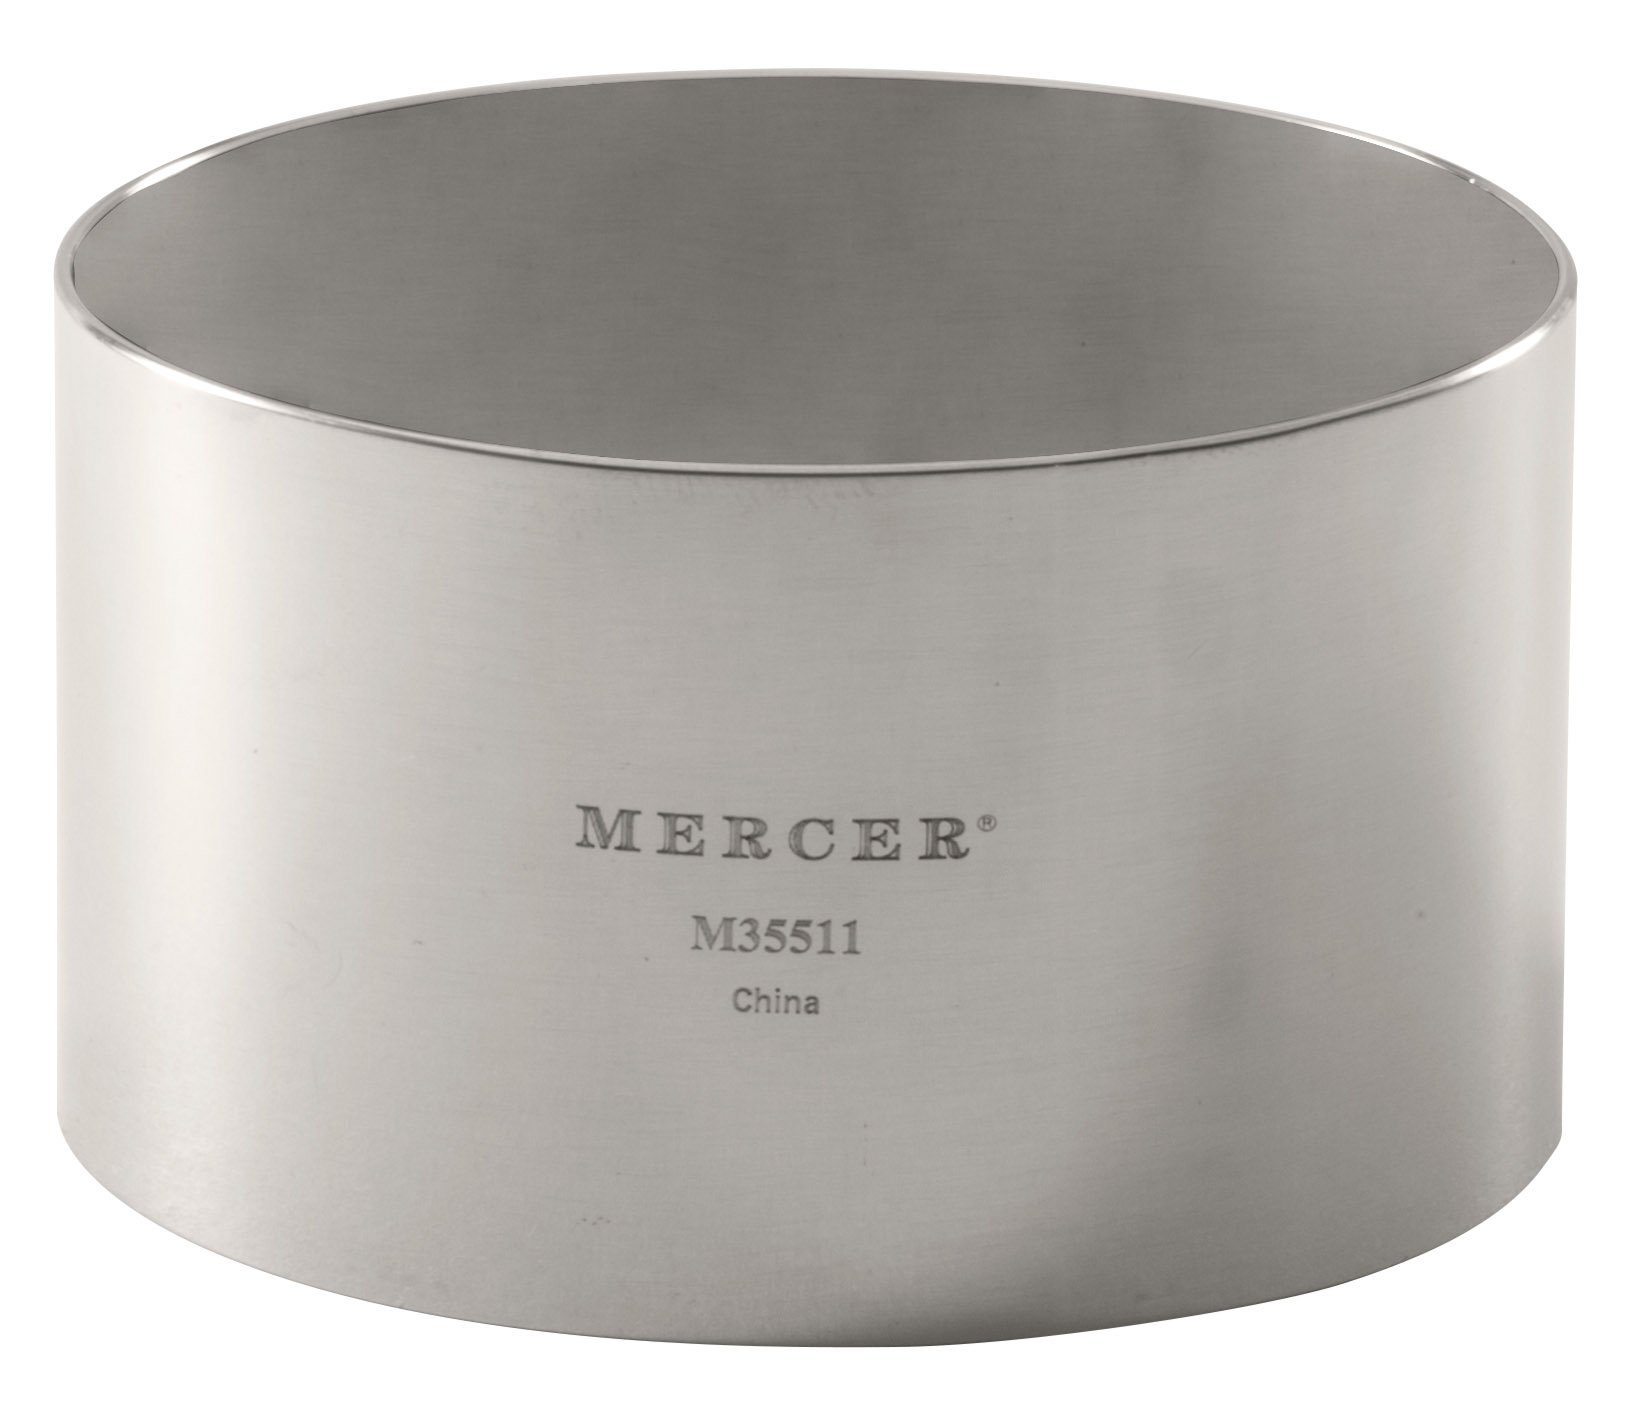 Mercer Culinary Steel Ring Mold Chef, 3 Inch x 1.75 Inch, Stainless